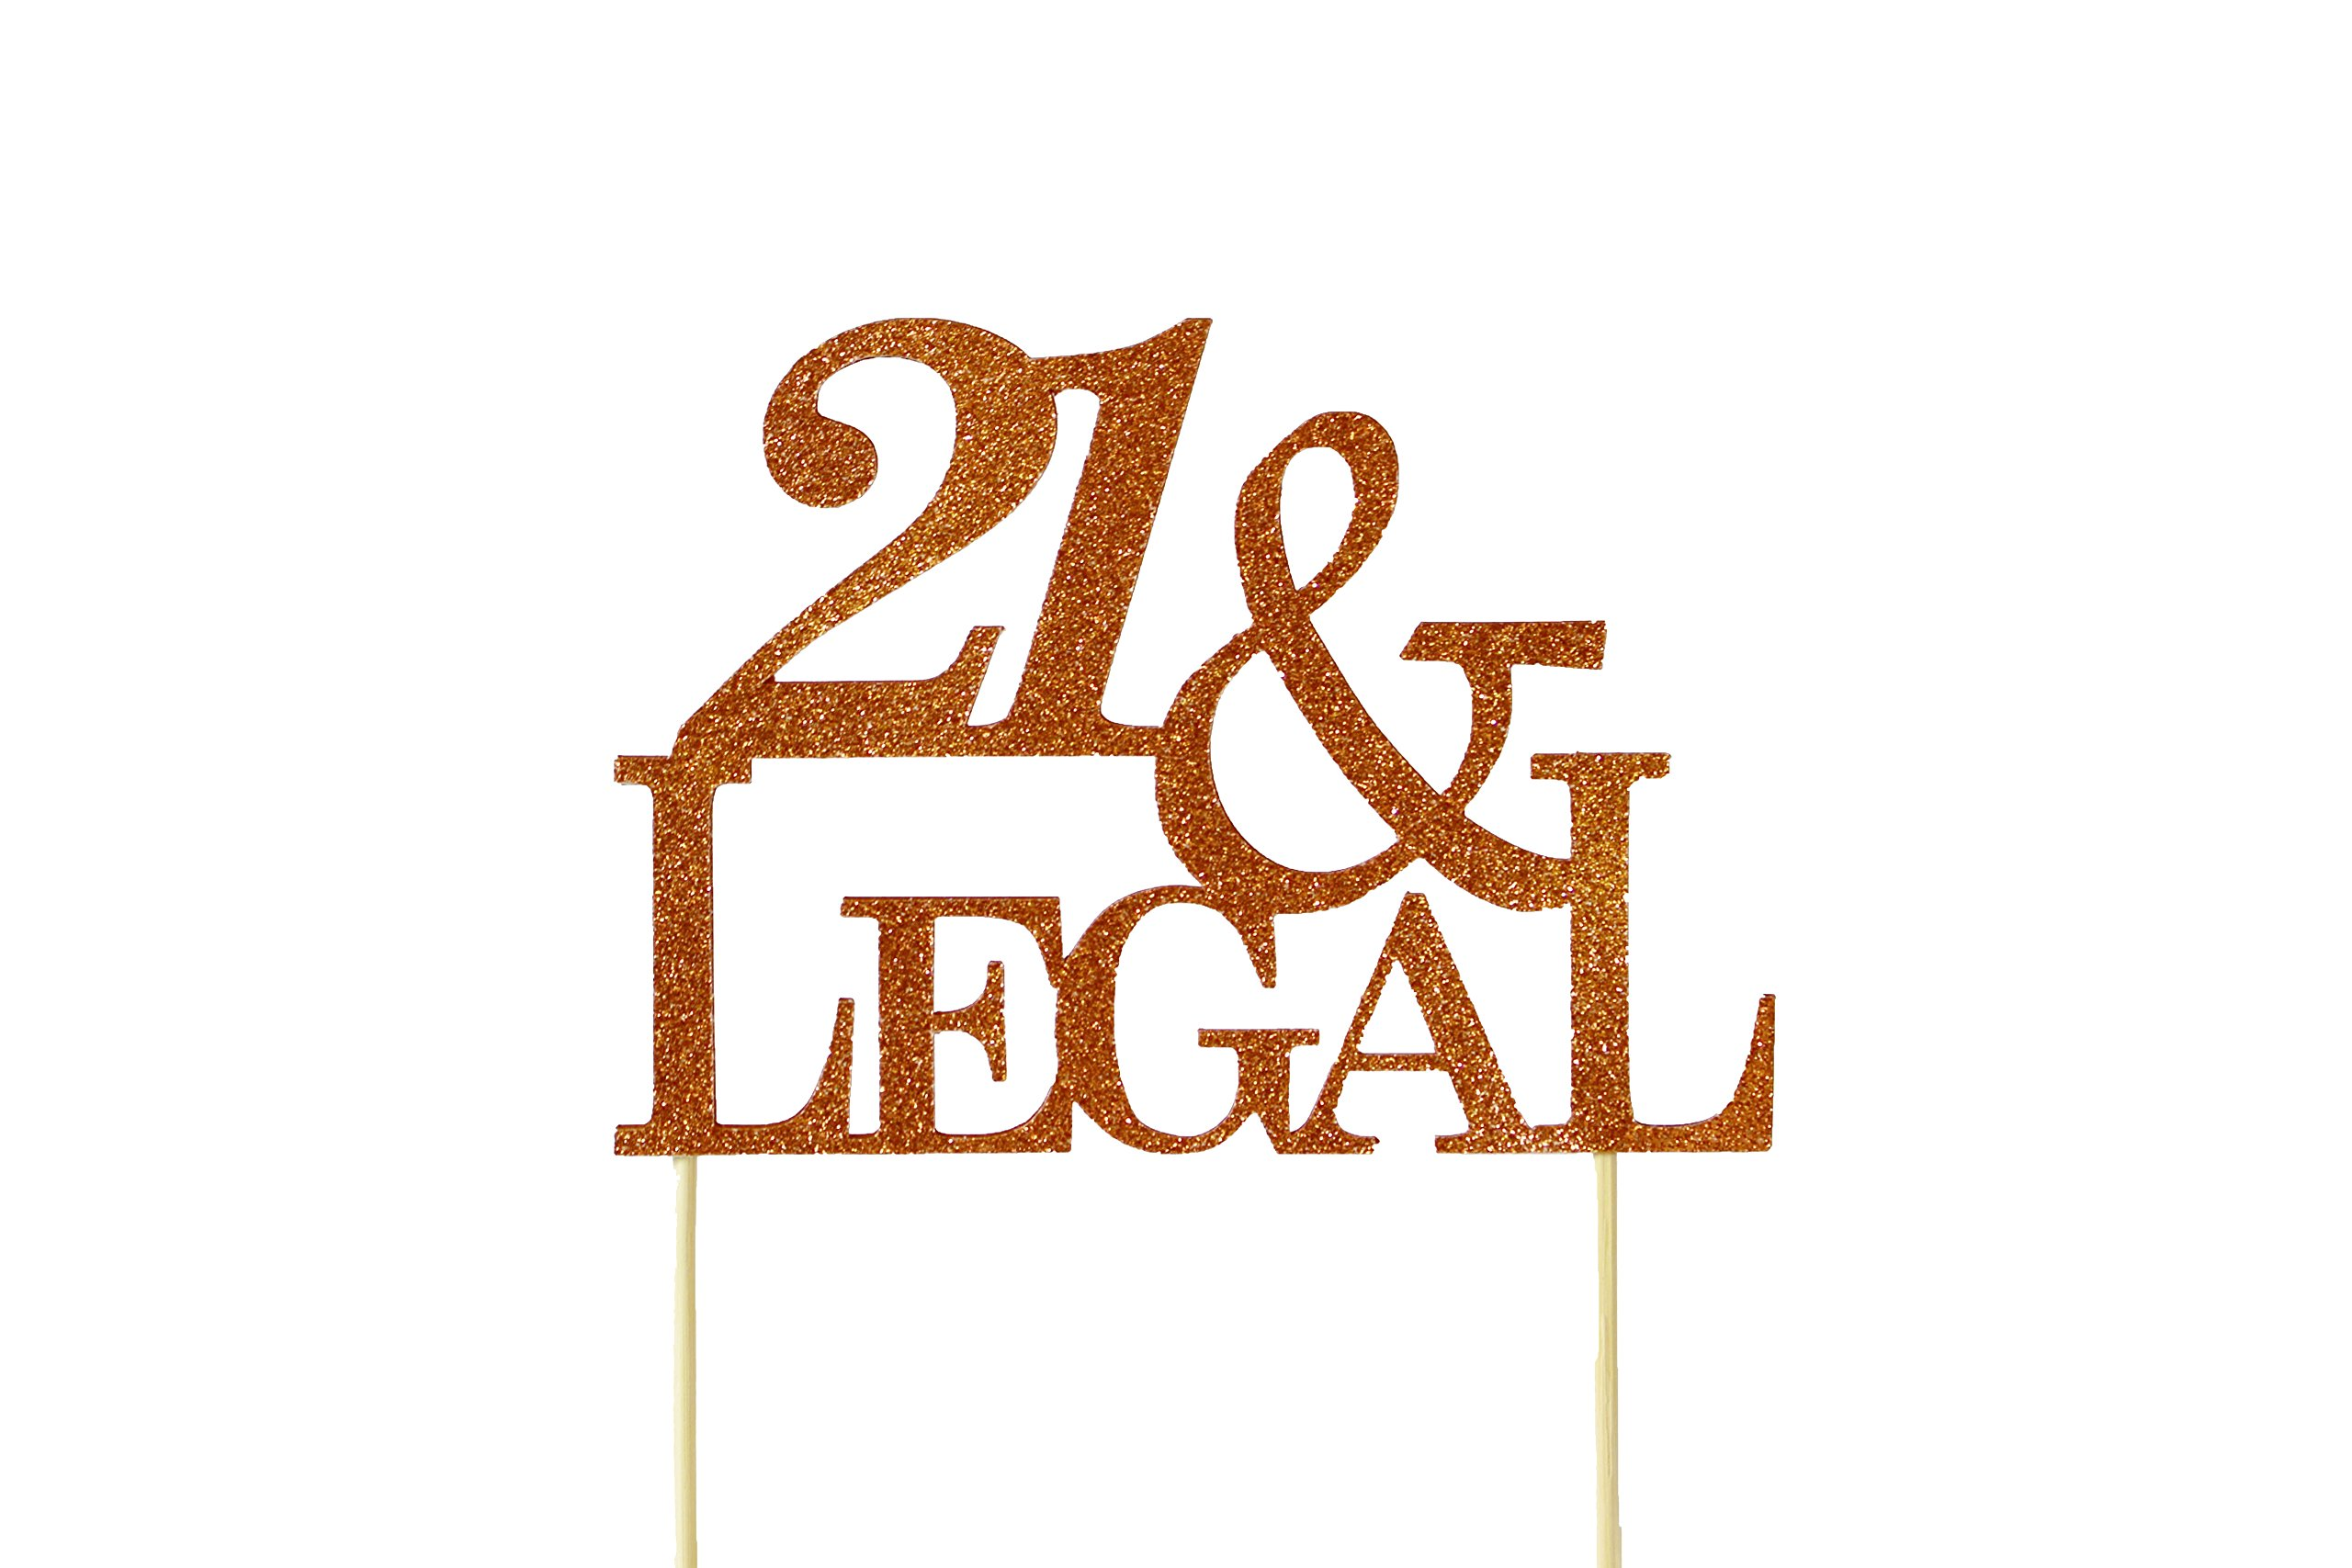 All About Details Copper 21-&-legal Cake Topper